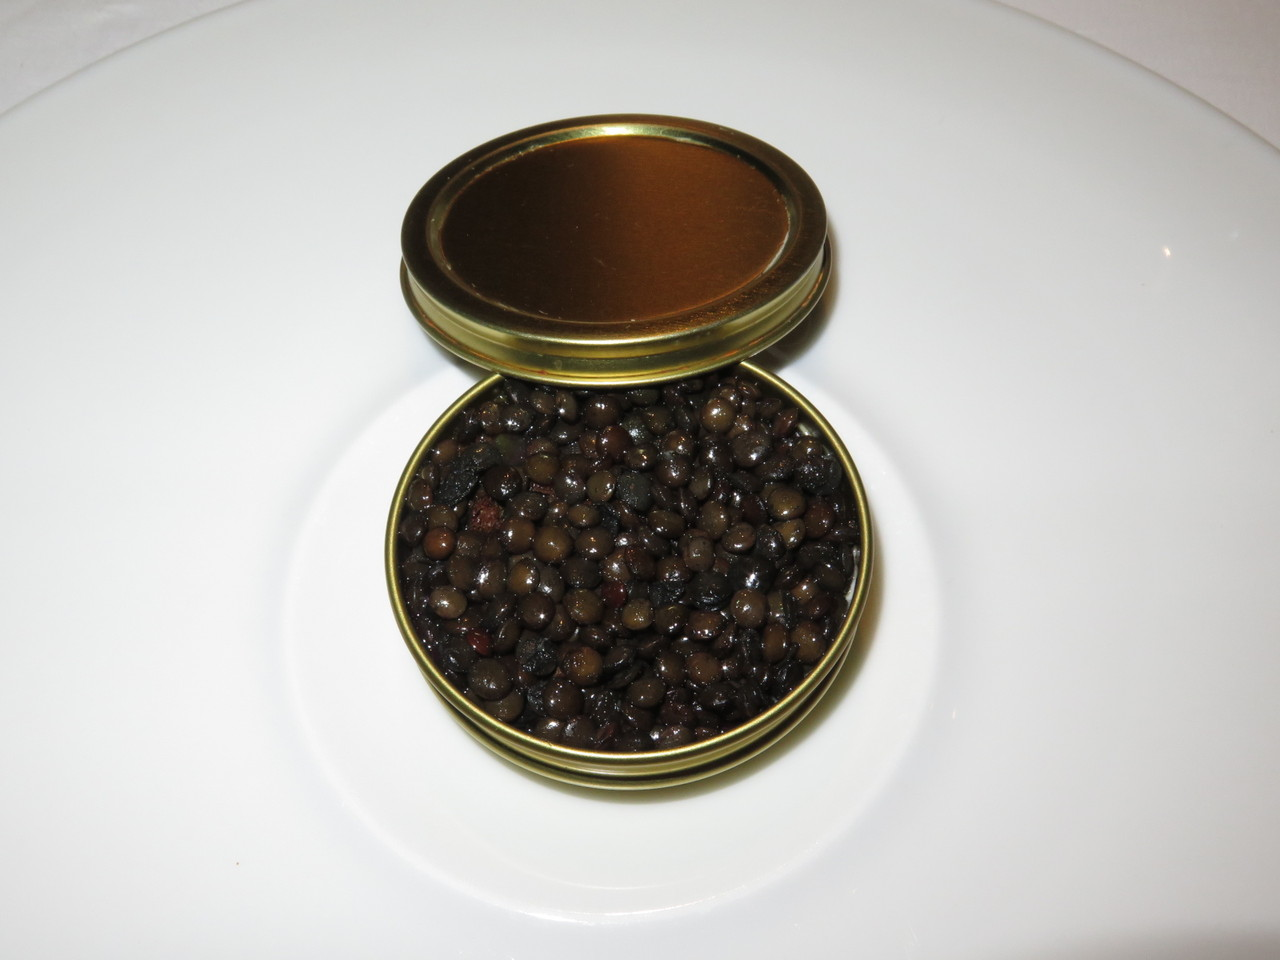 Lentils are better than caviar